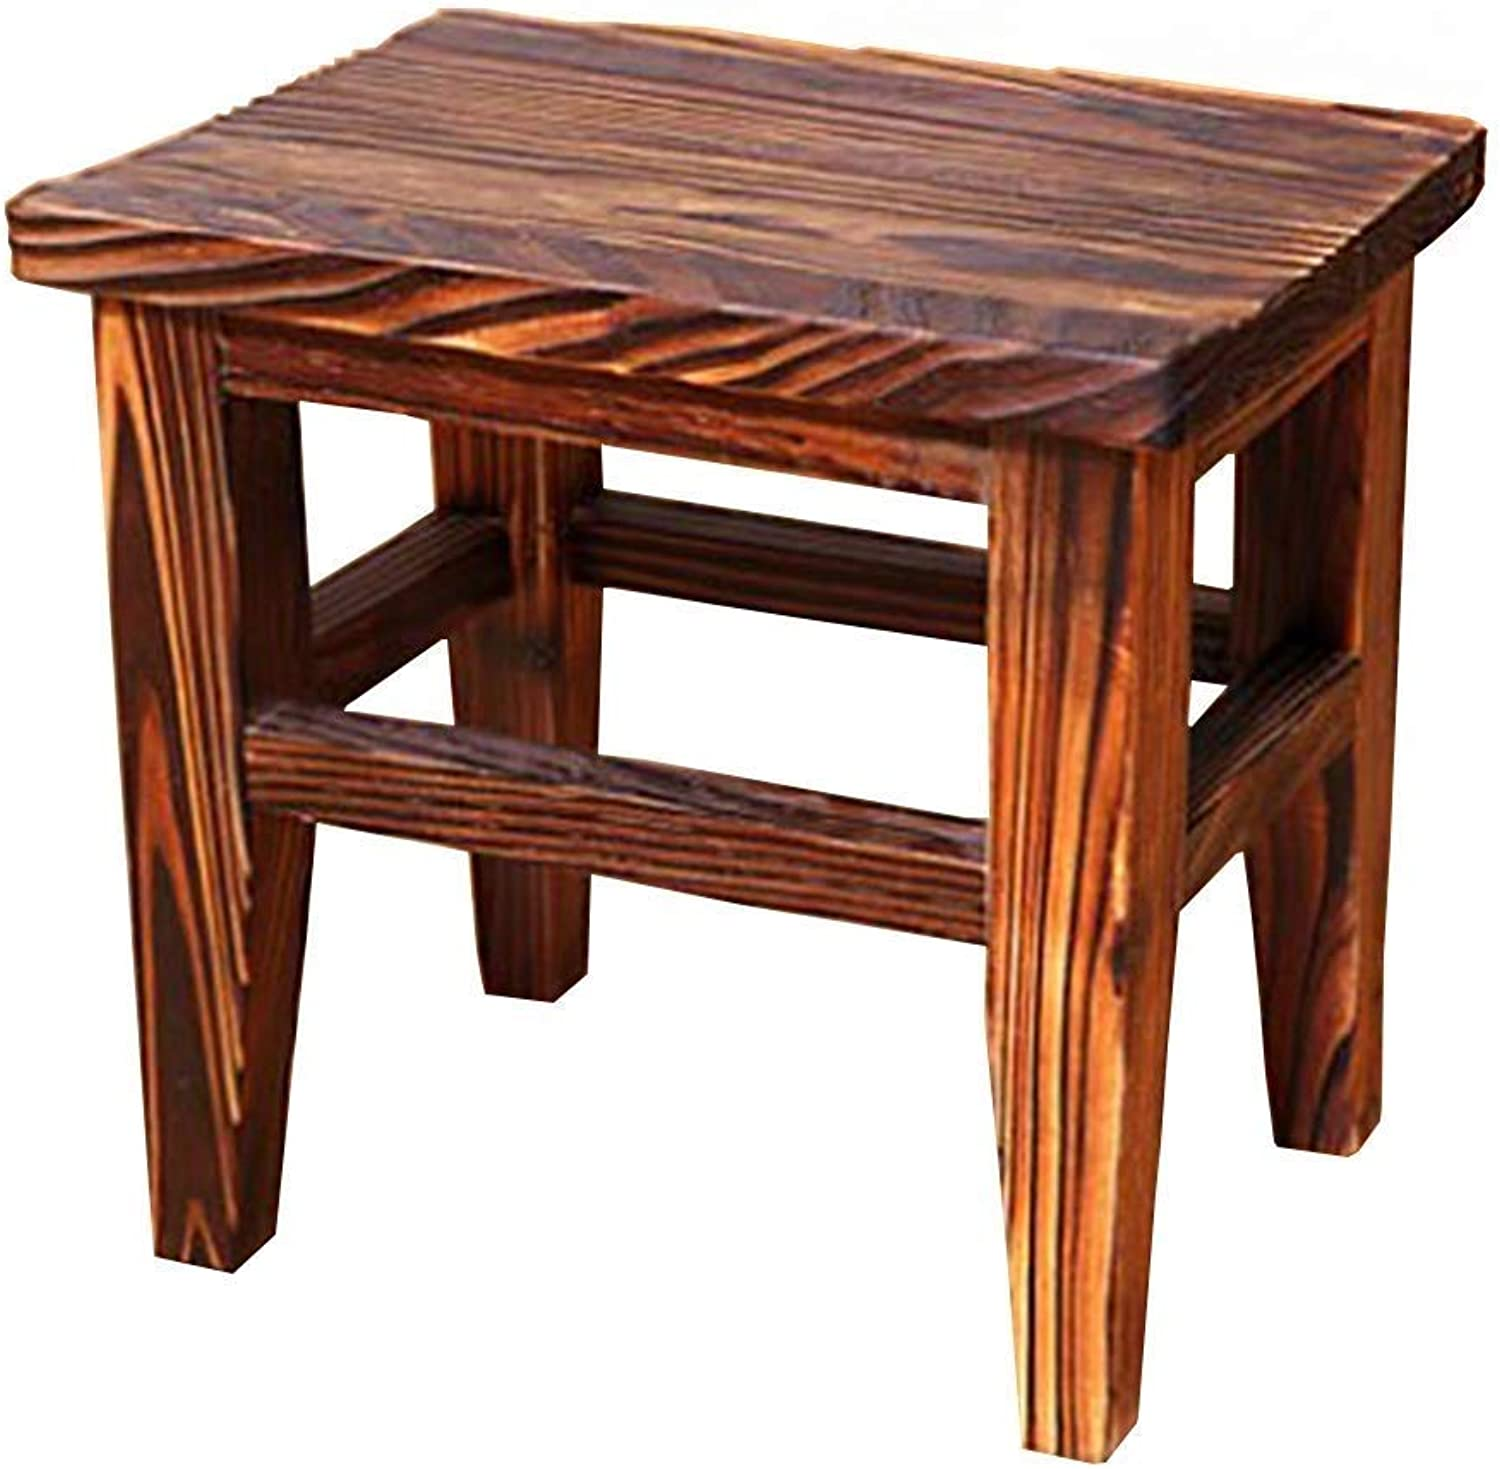 WSJTT Home Stool,Solid Wood Small Stool,shoes Stool,Coffee Table Stool,Simple Art Small Bench,Home Solid Wood Bench,Multi-Function Home Decoration Stool